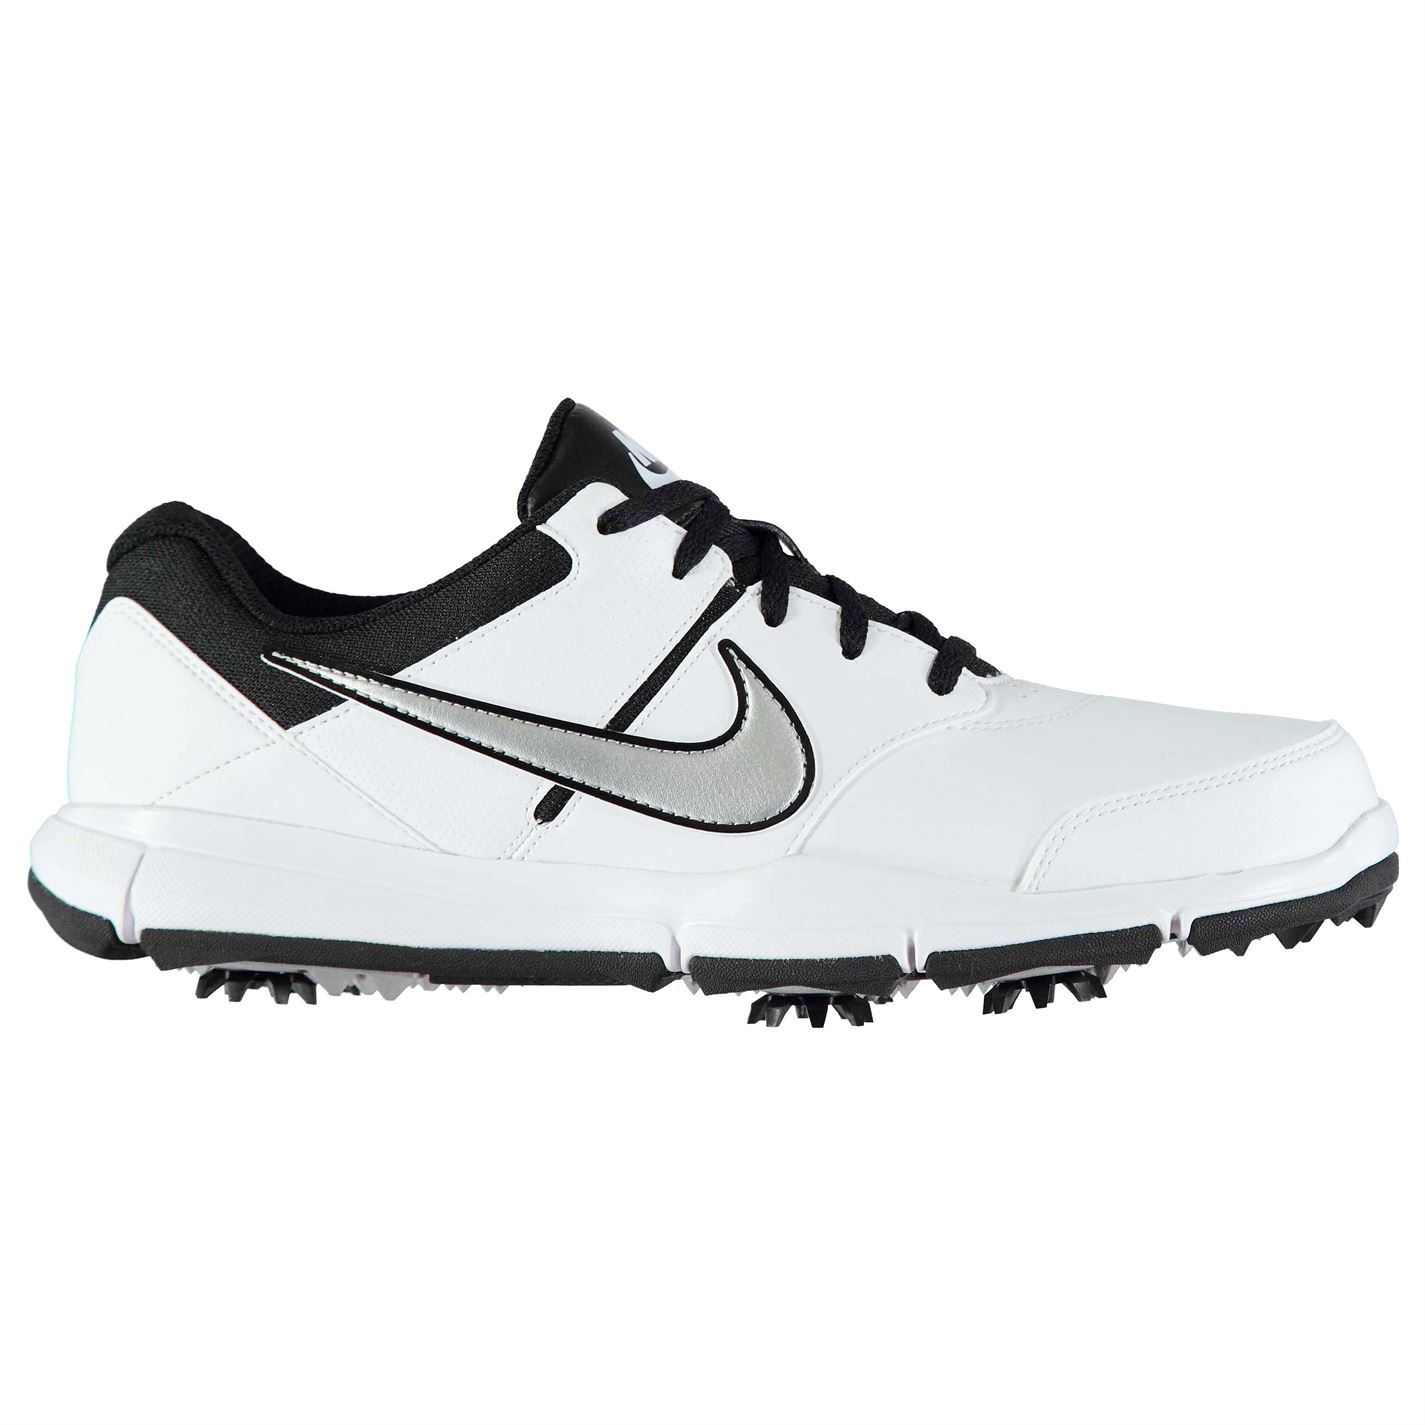 Nike-Durasport-4-Spiked-Golf-Shoes-Mens-Spikes-Footwear thumbnail 21